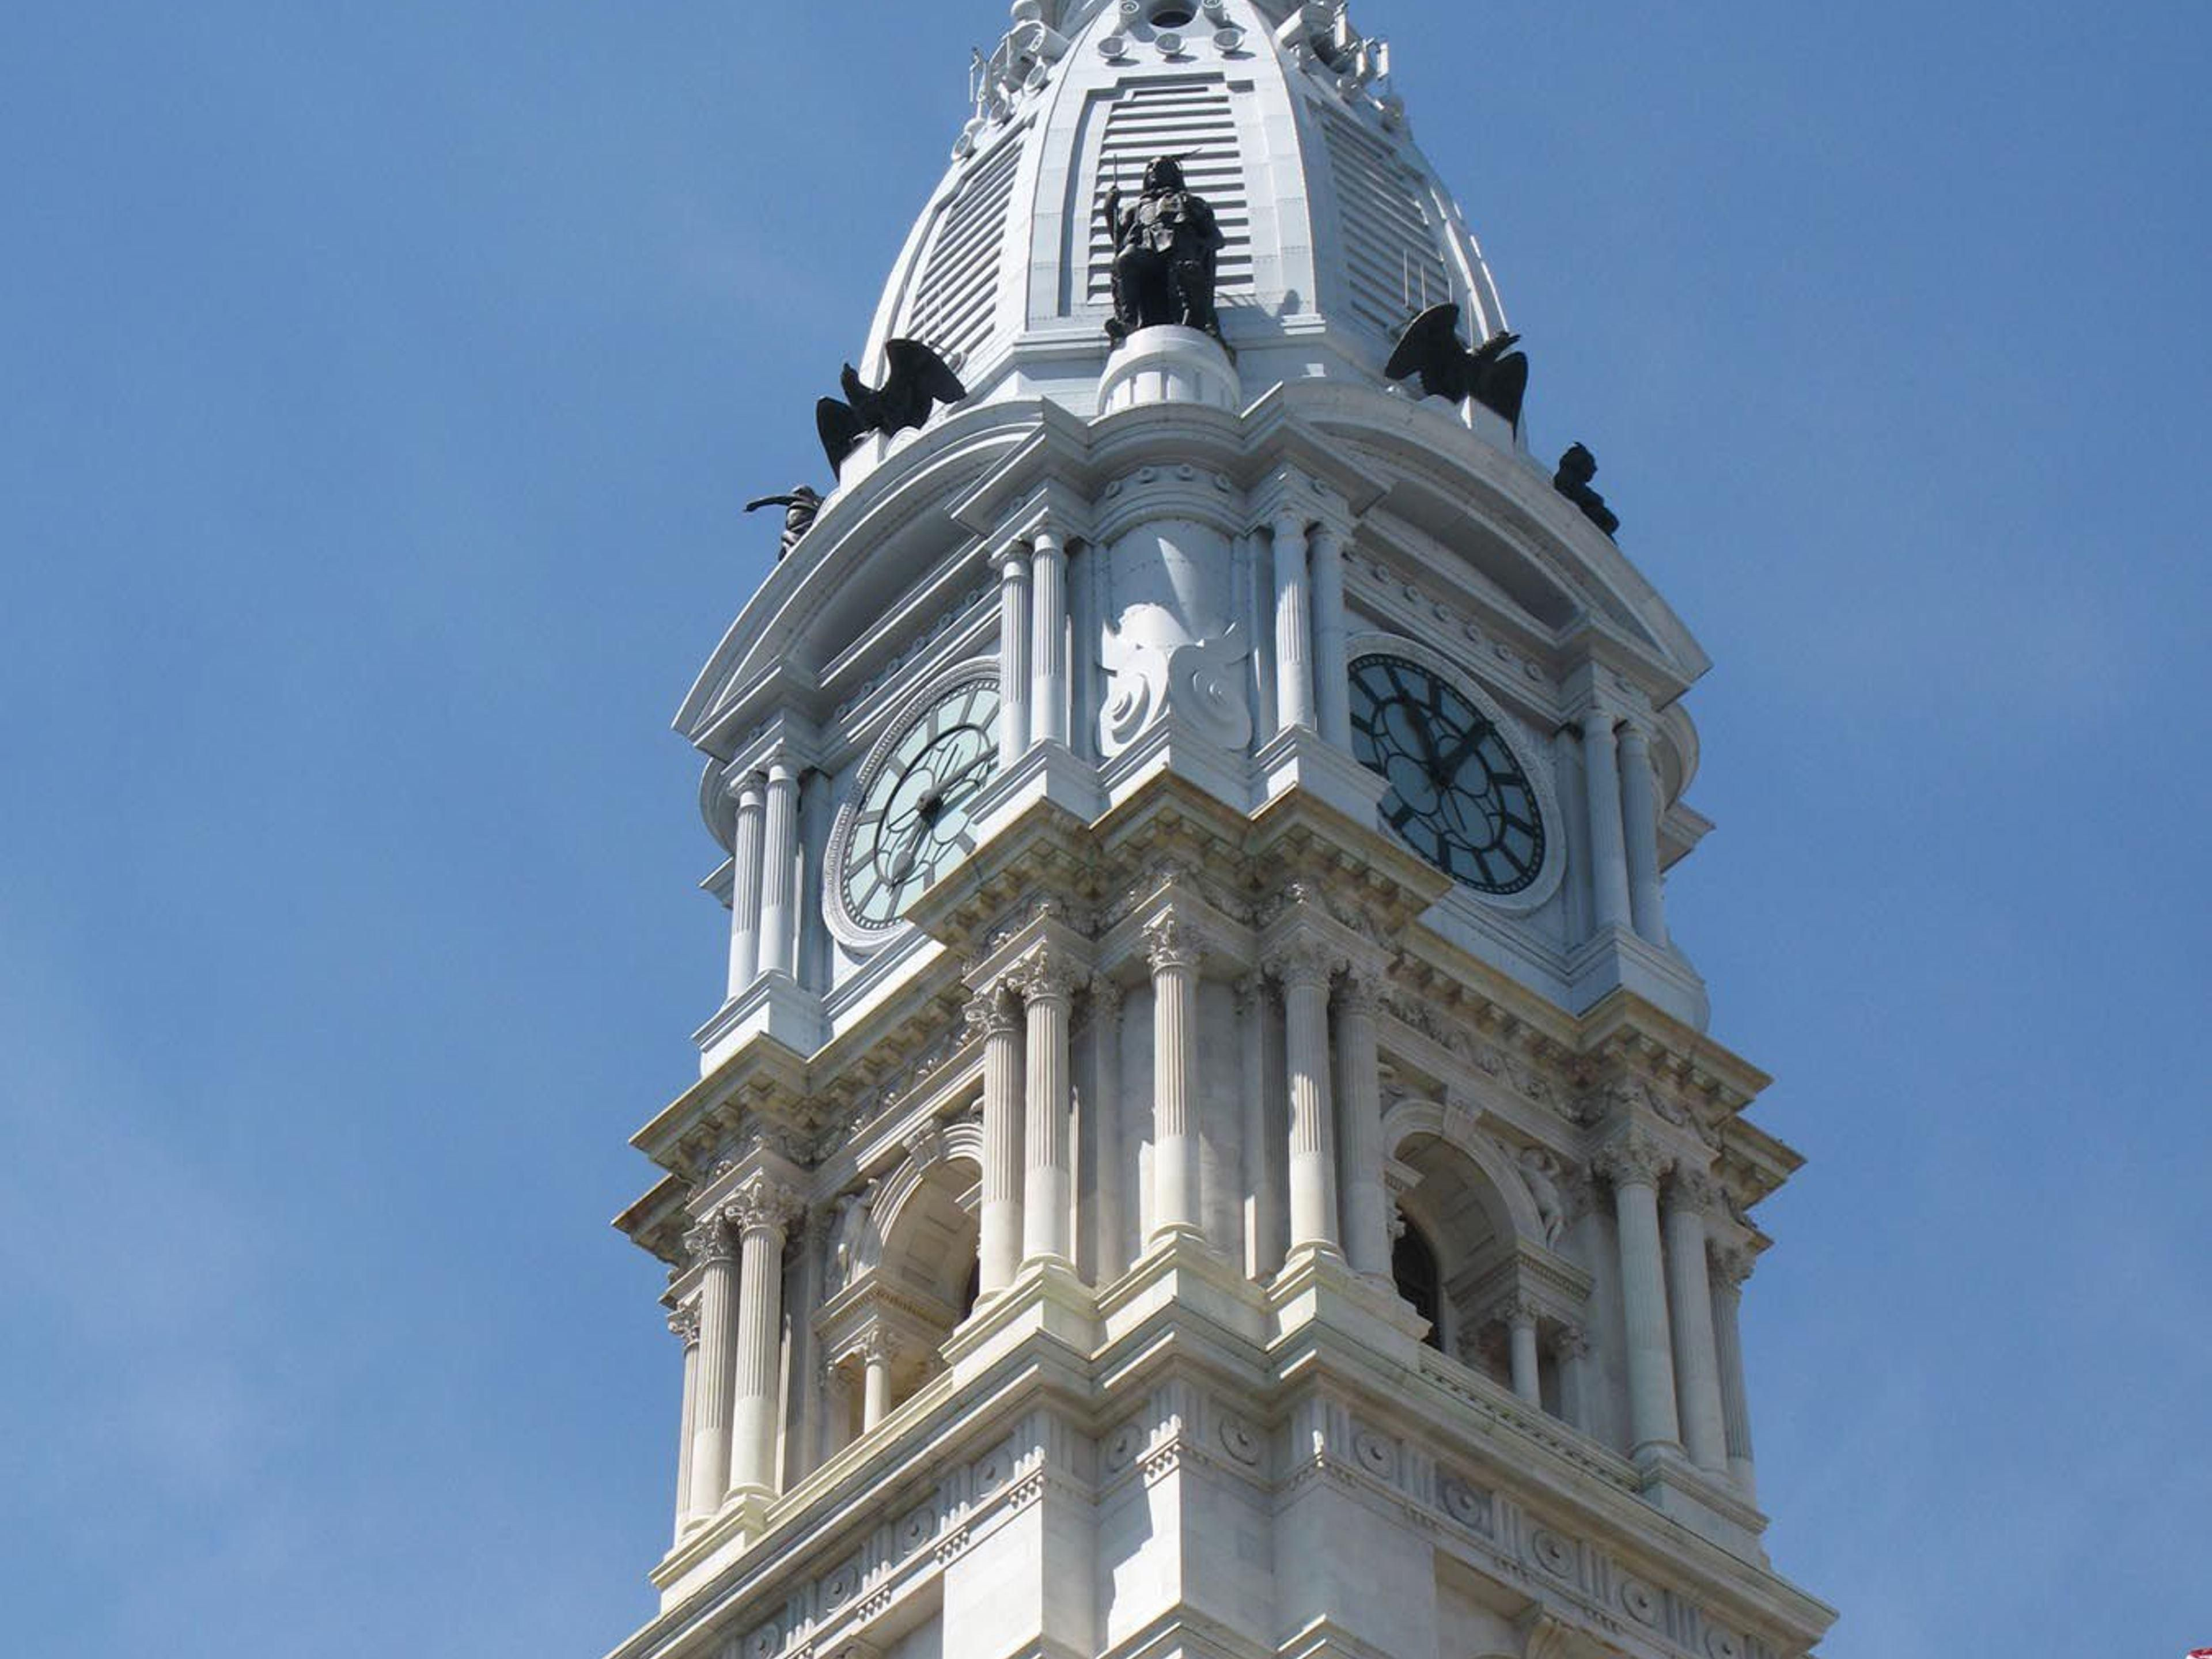 It's William Penn on top of City Hall